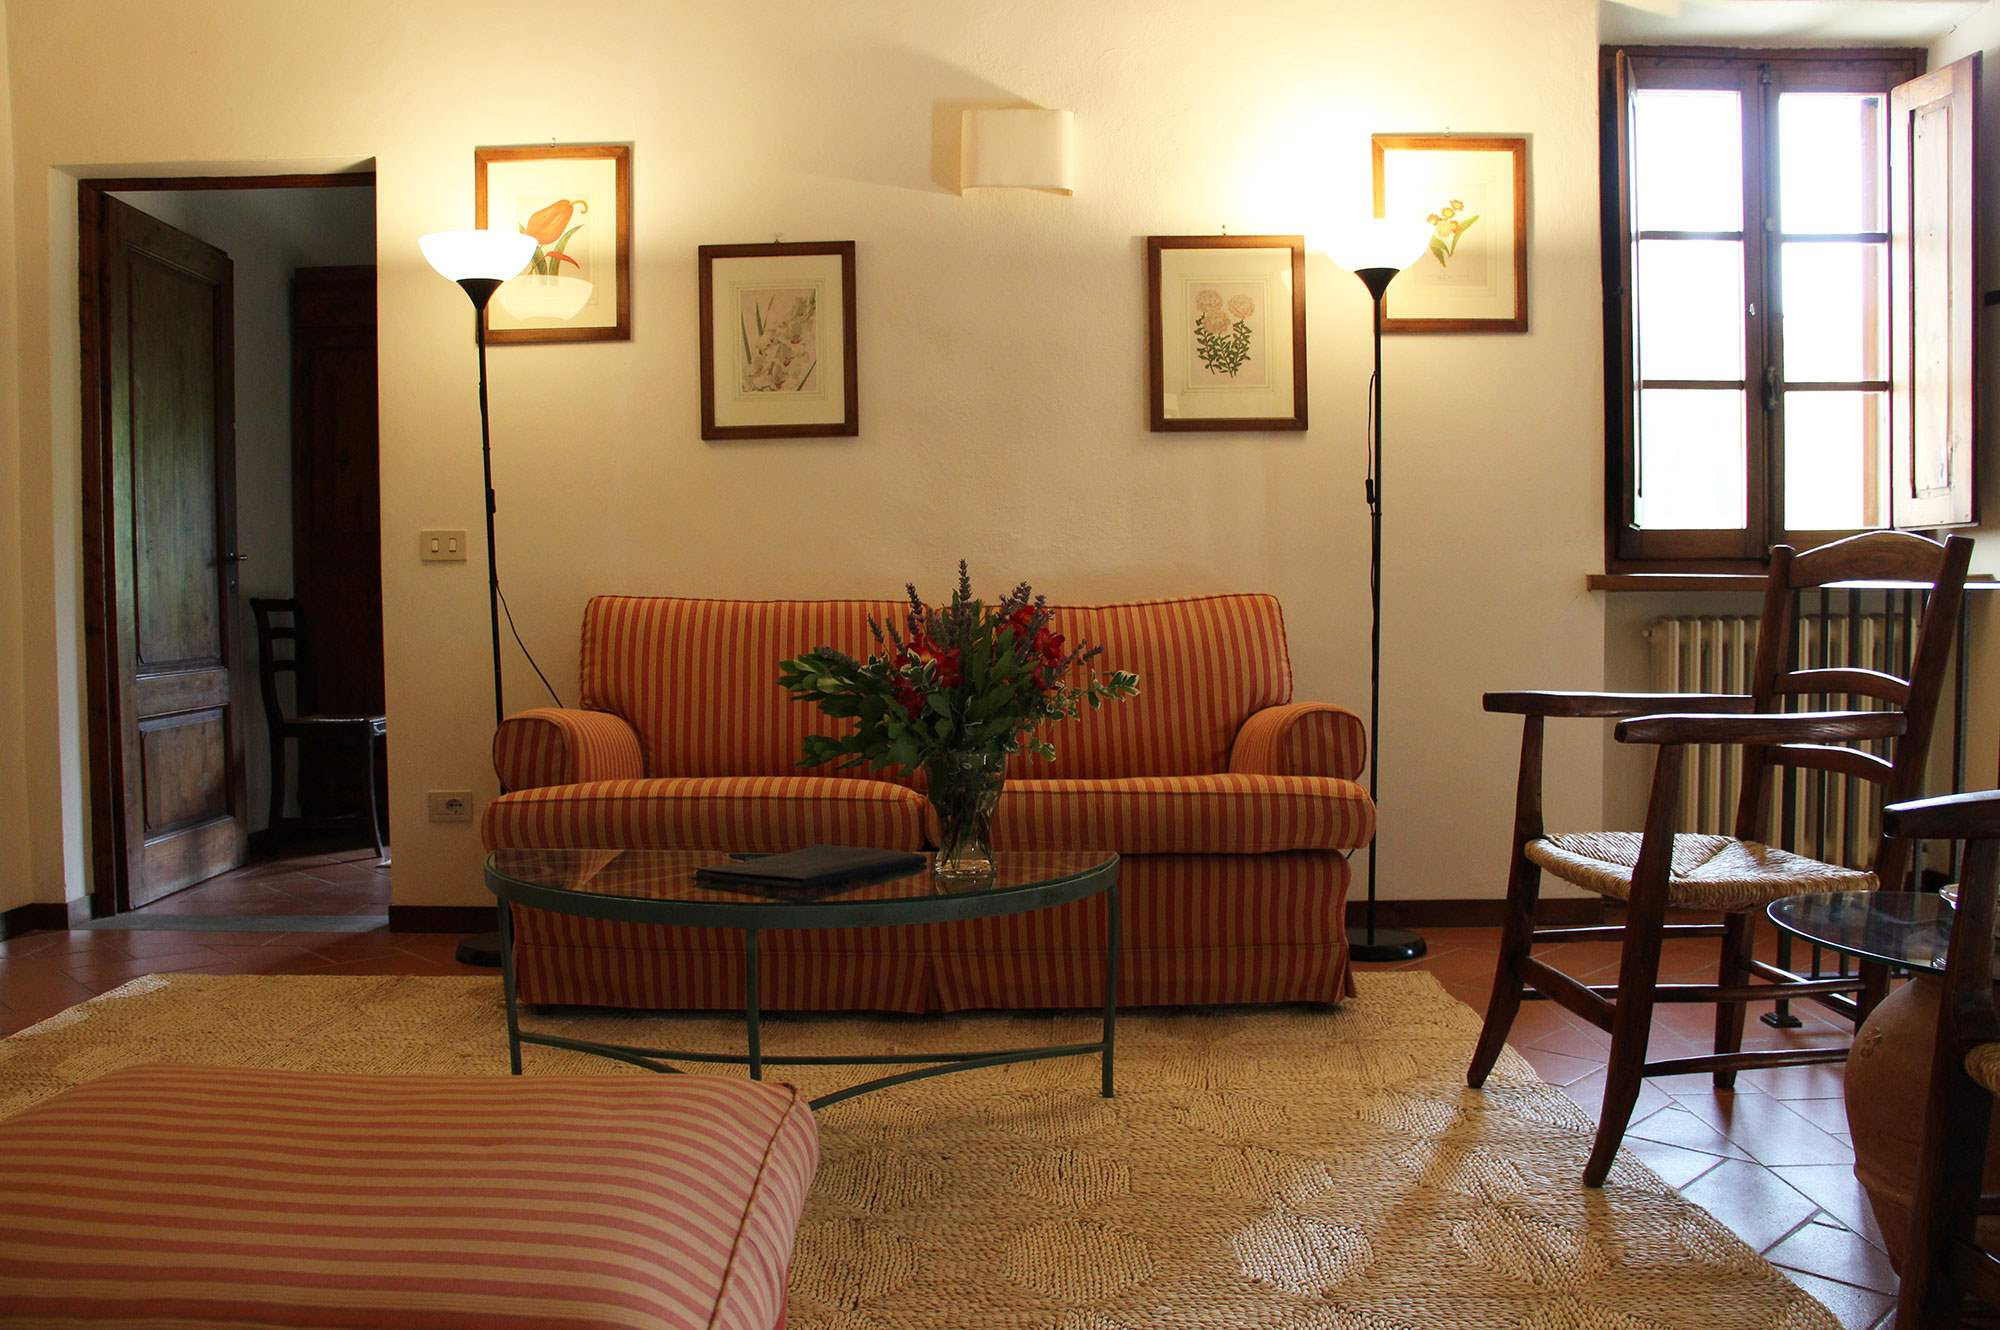 Casa Ferruzzi 2, 3 bedroom apartment in Chianti & Countryside, Tuscany Photo #4